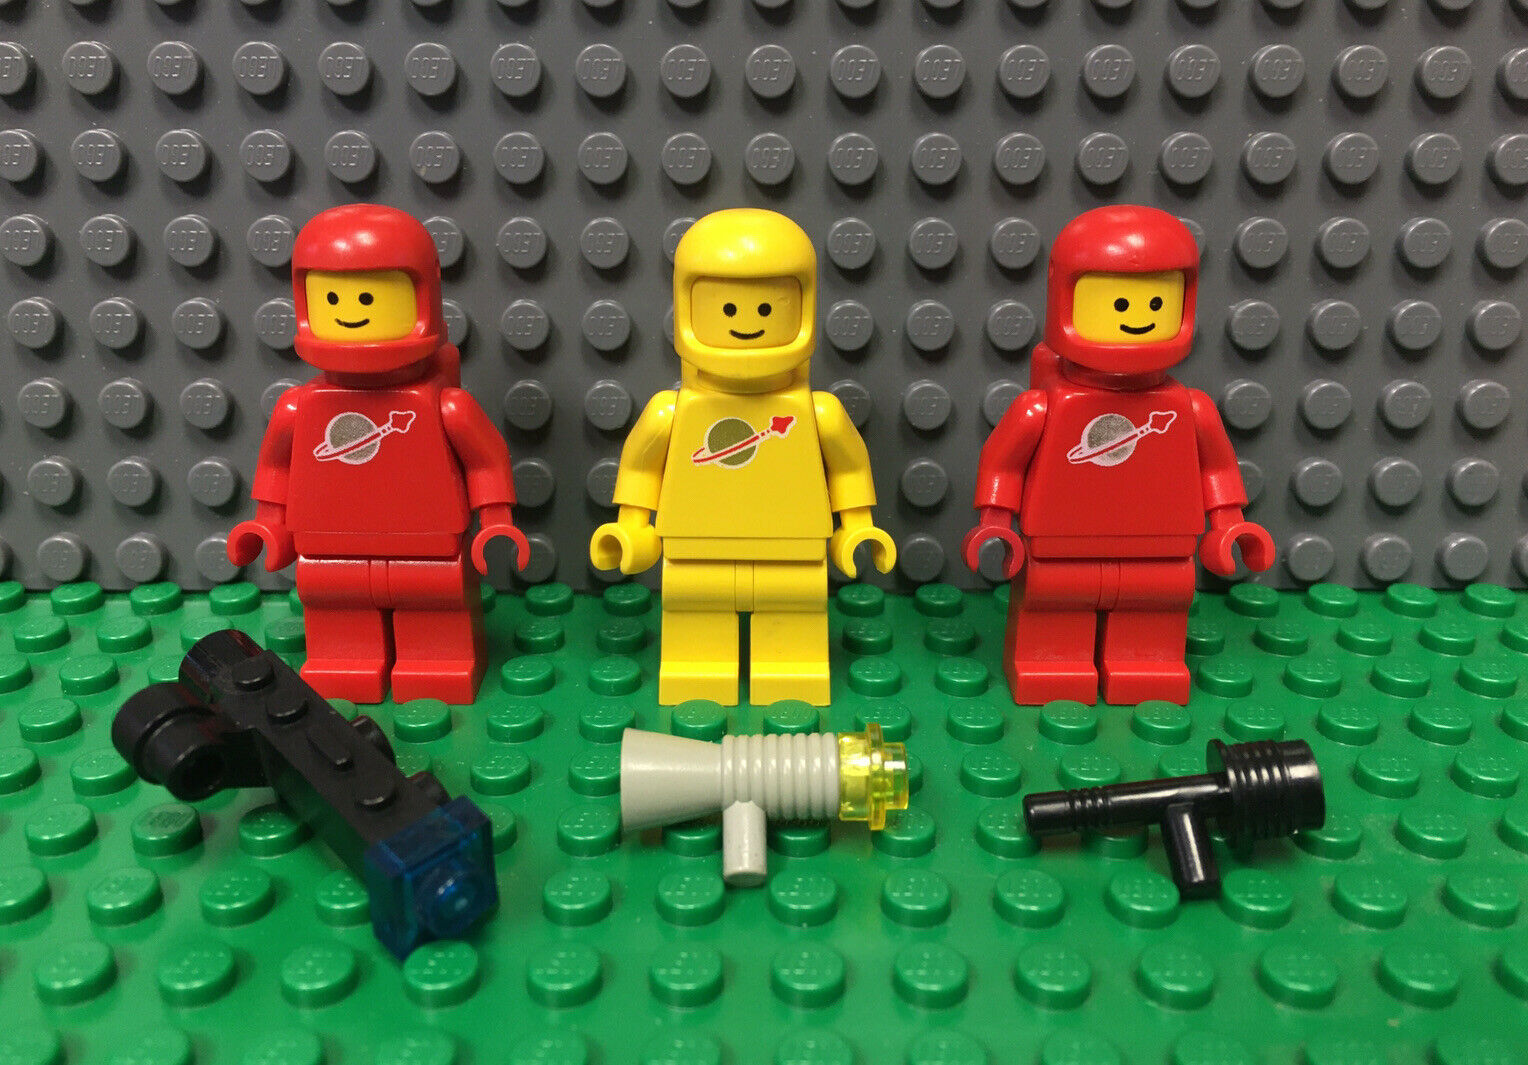 973px670 F4 # Lego Figure Minifig Classic Space-Floating Pattern cty436